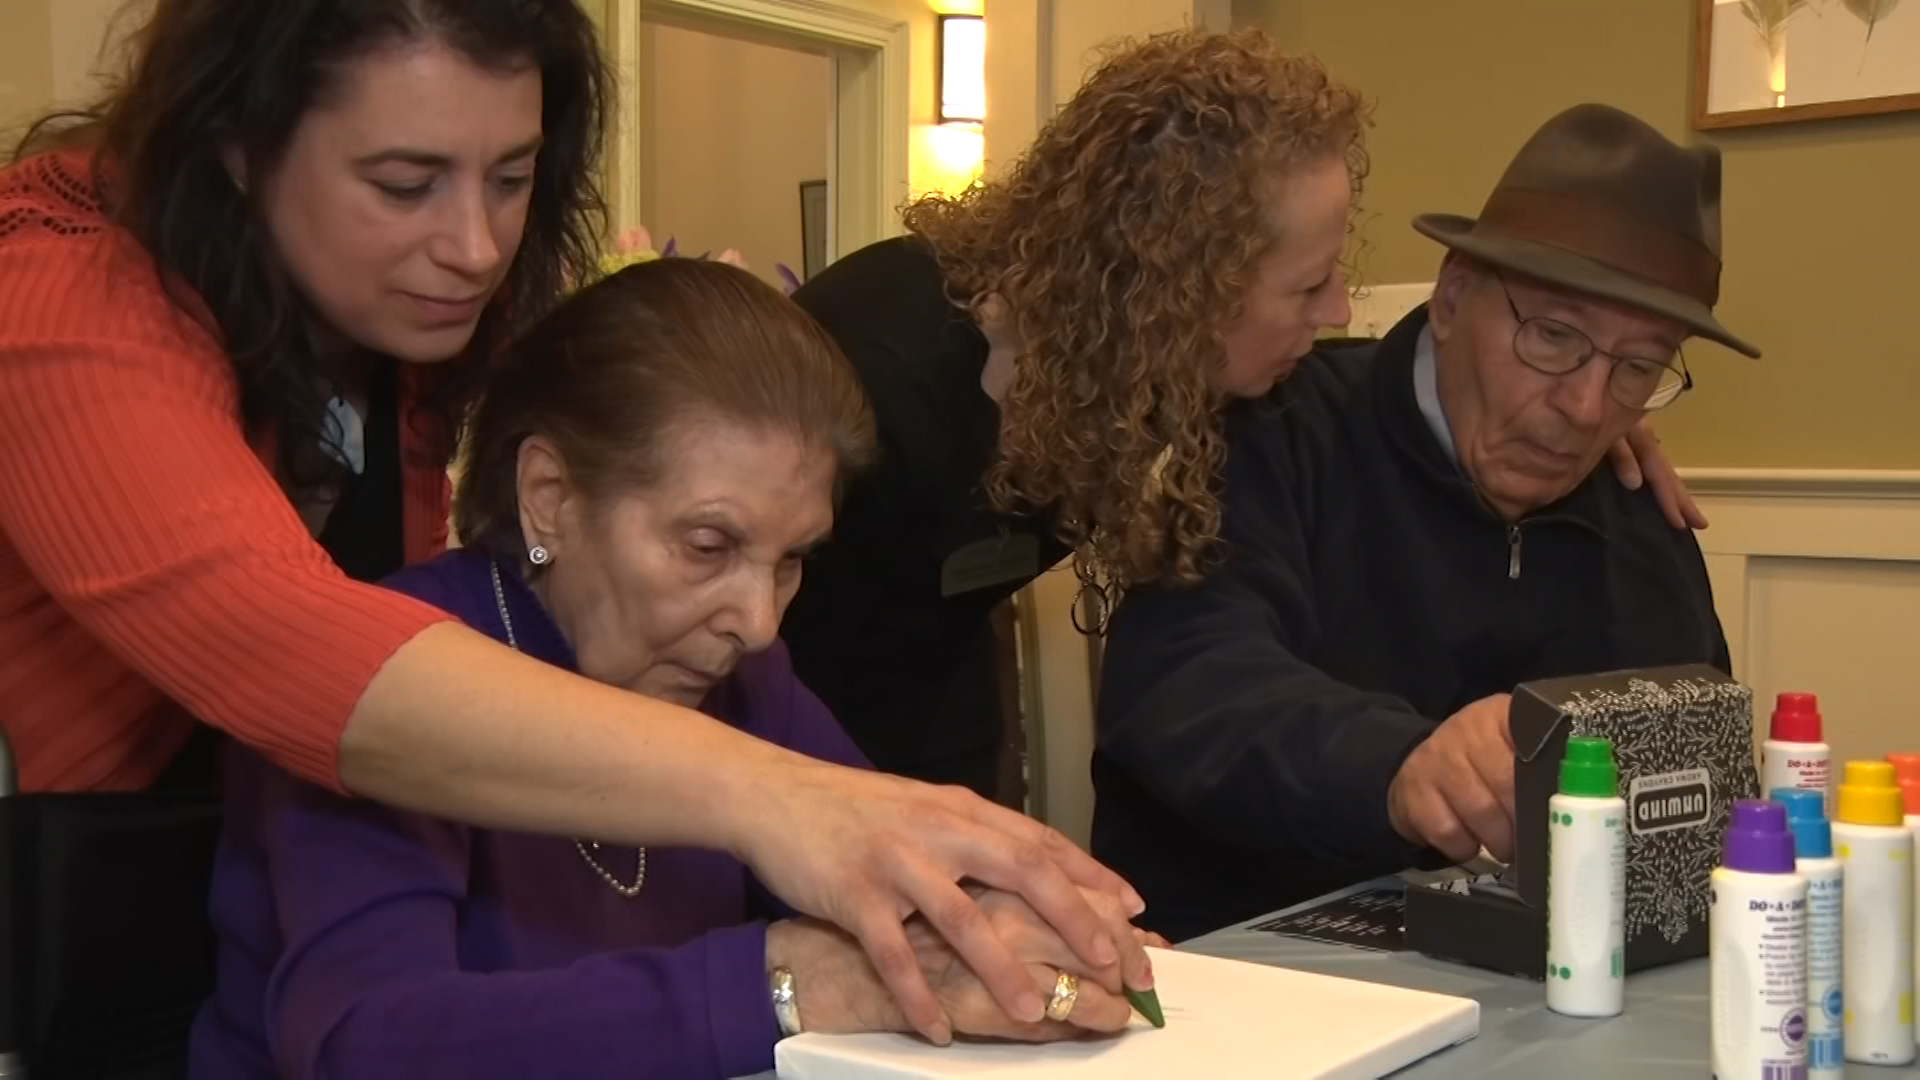 Art therapy helps dementia patients communicate and connect   Video   NJTV News